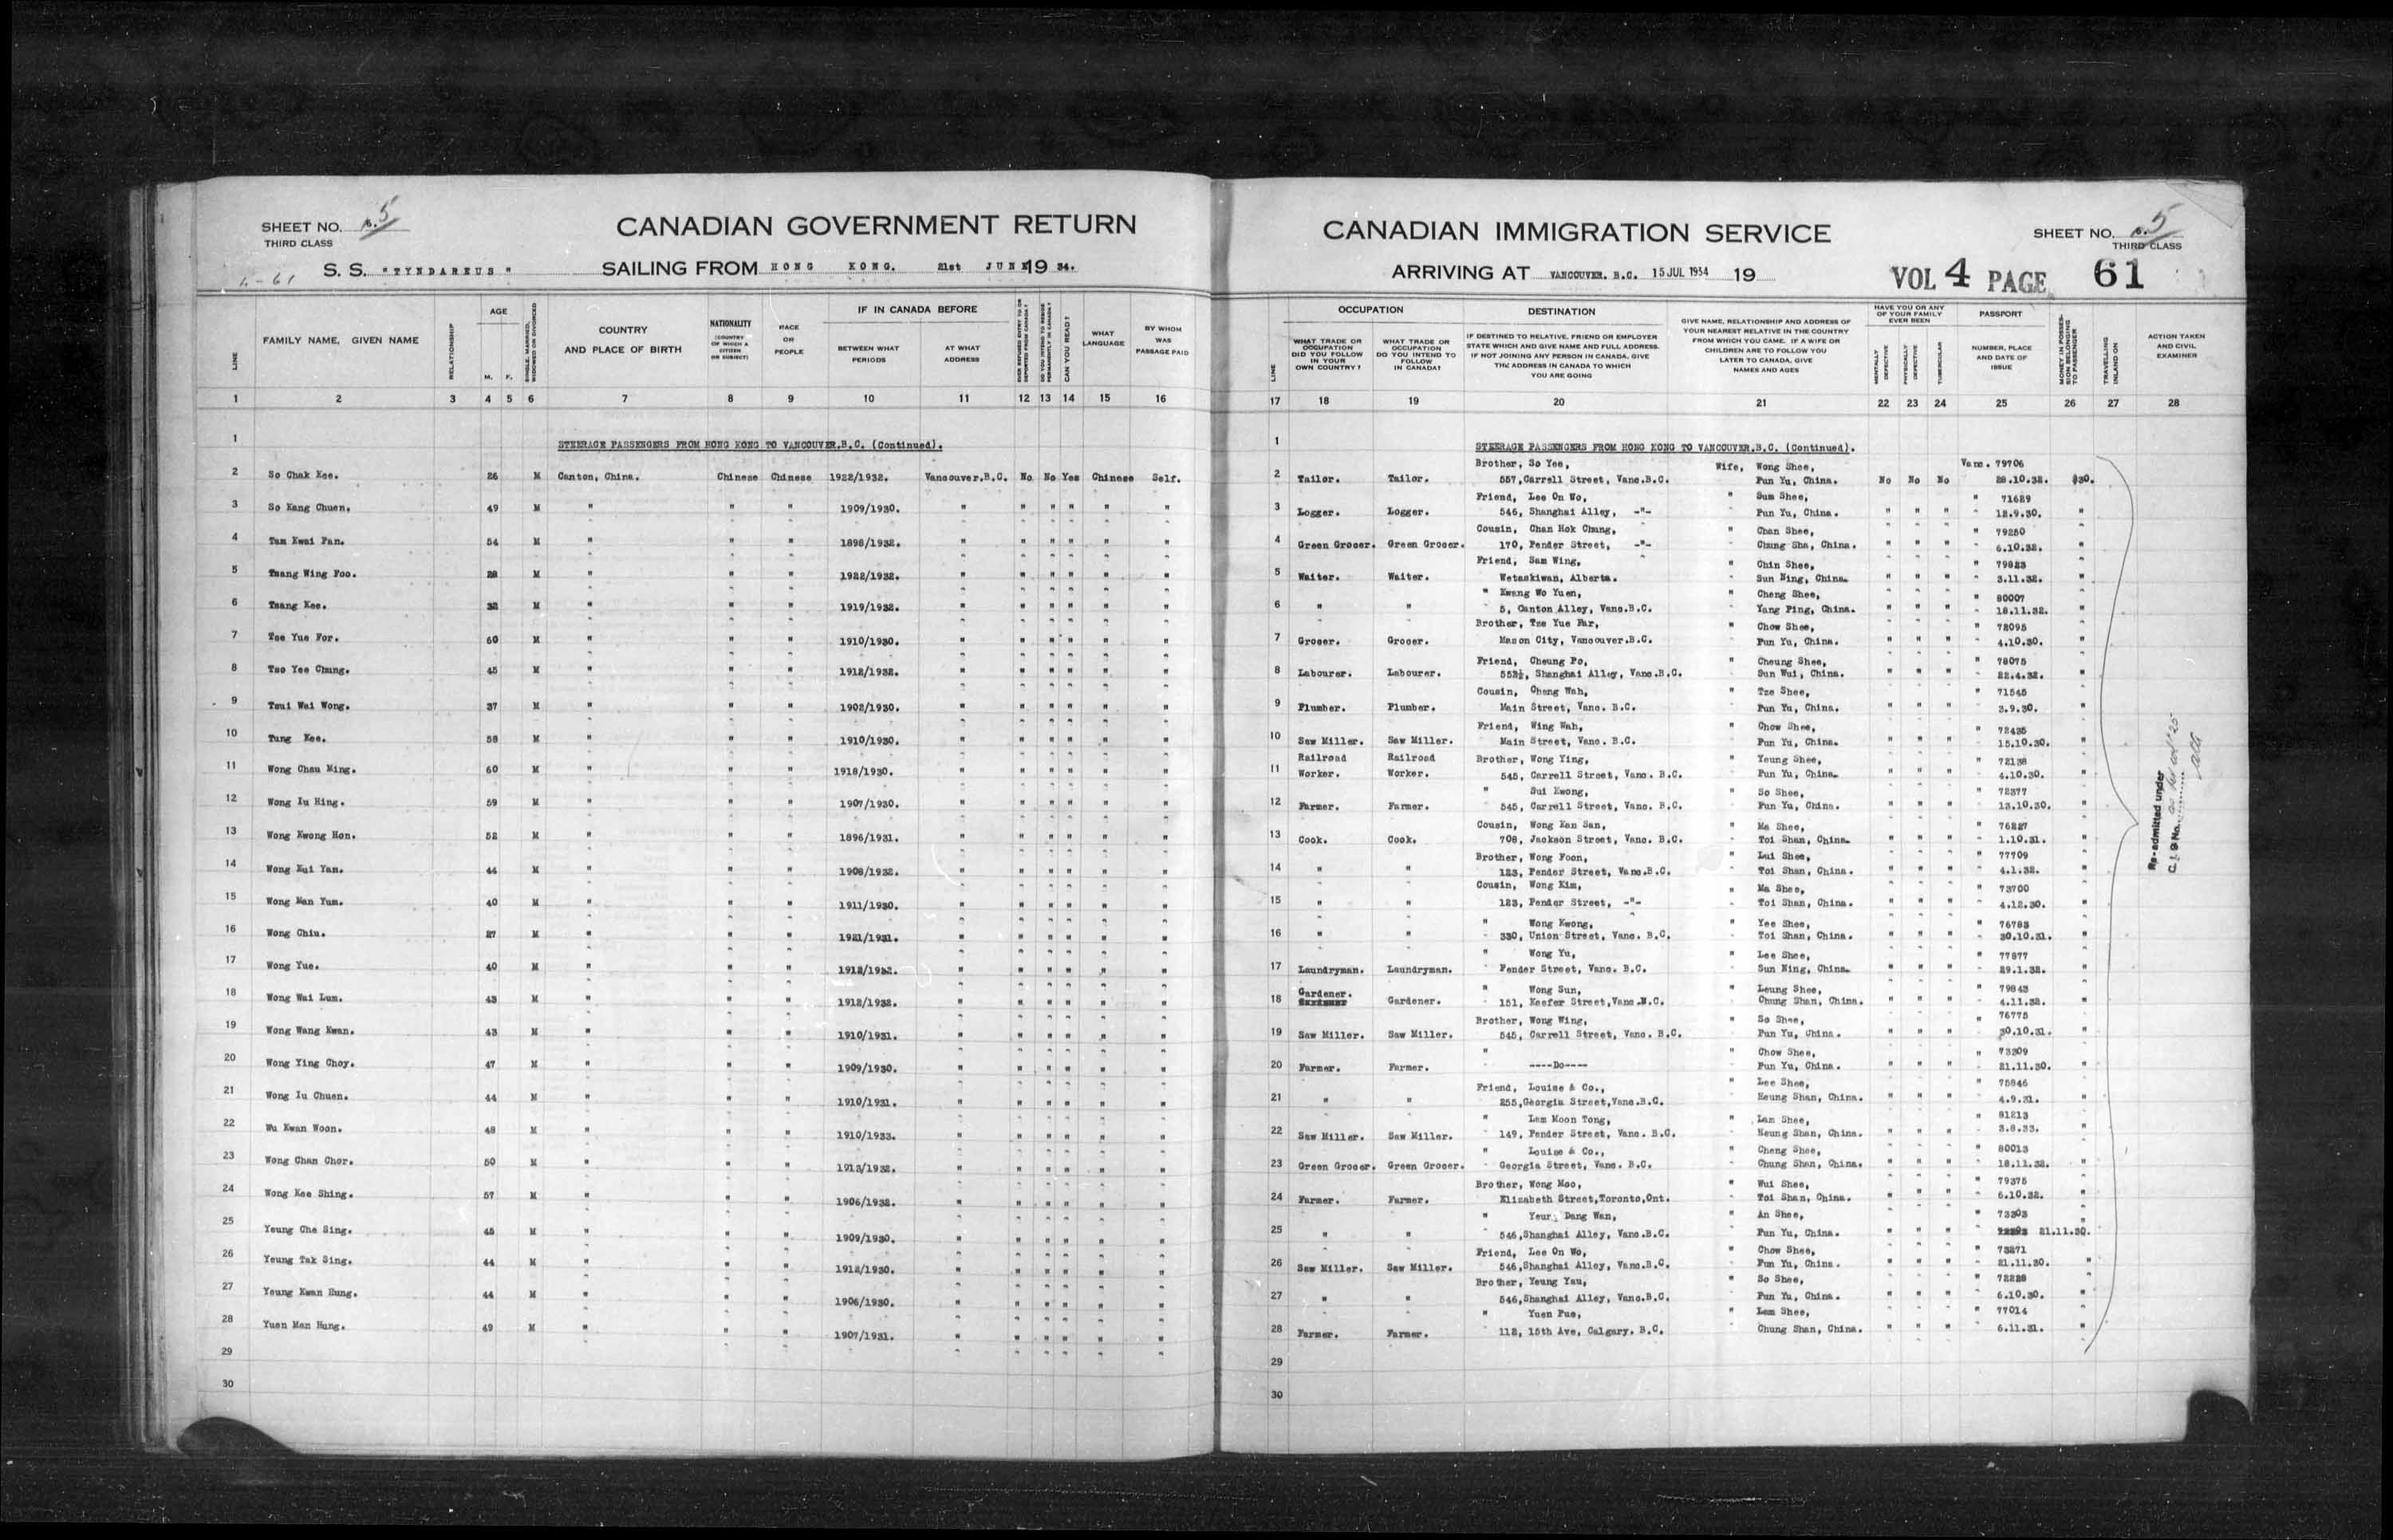 Title: Passenger Lists: Vancouver and Victoria (1925-1935) - Mikan Number: 161347 - Microform: t-14906